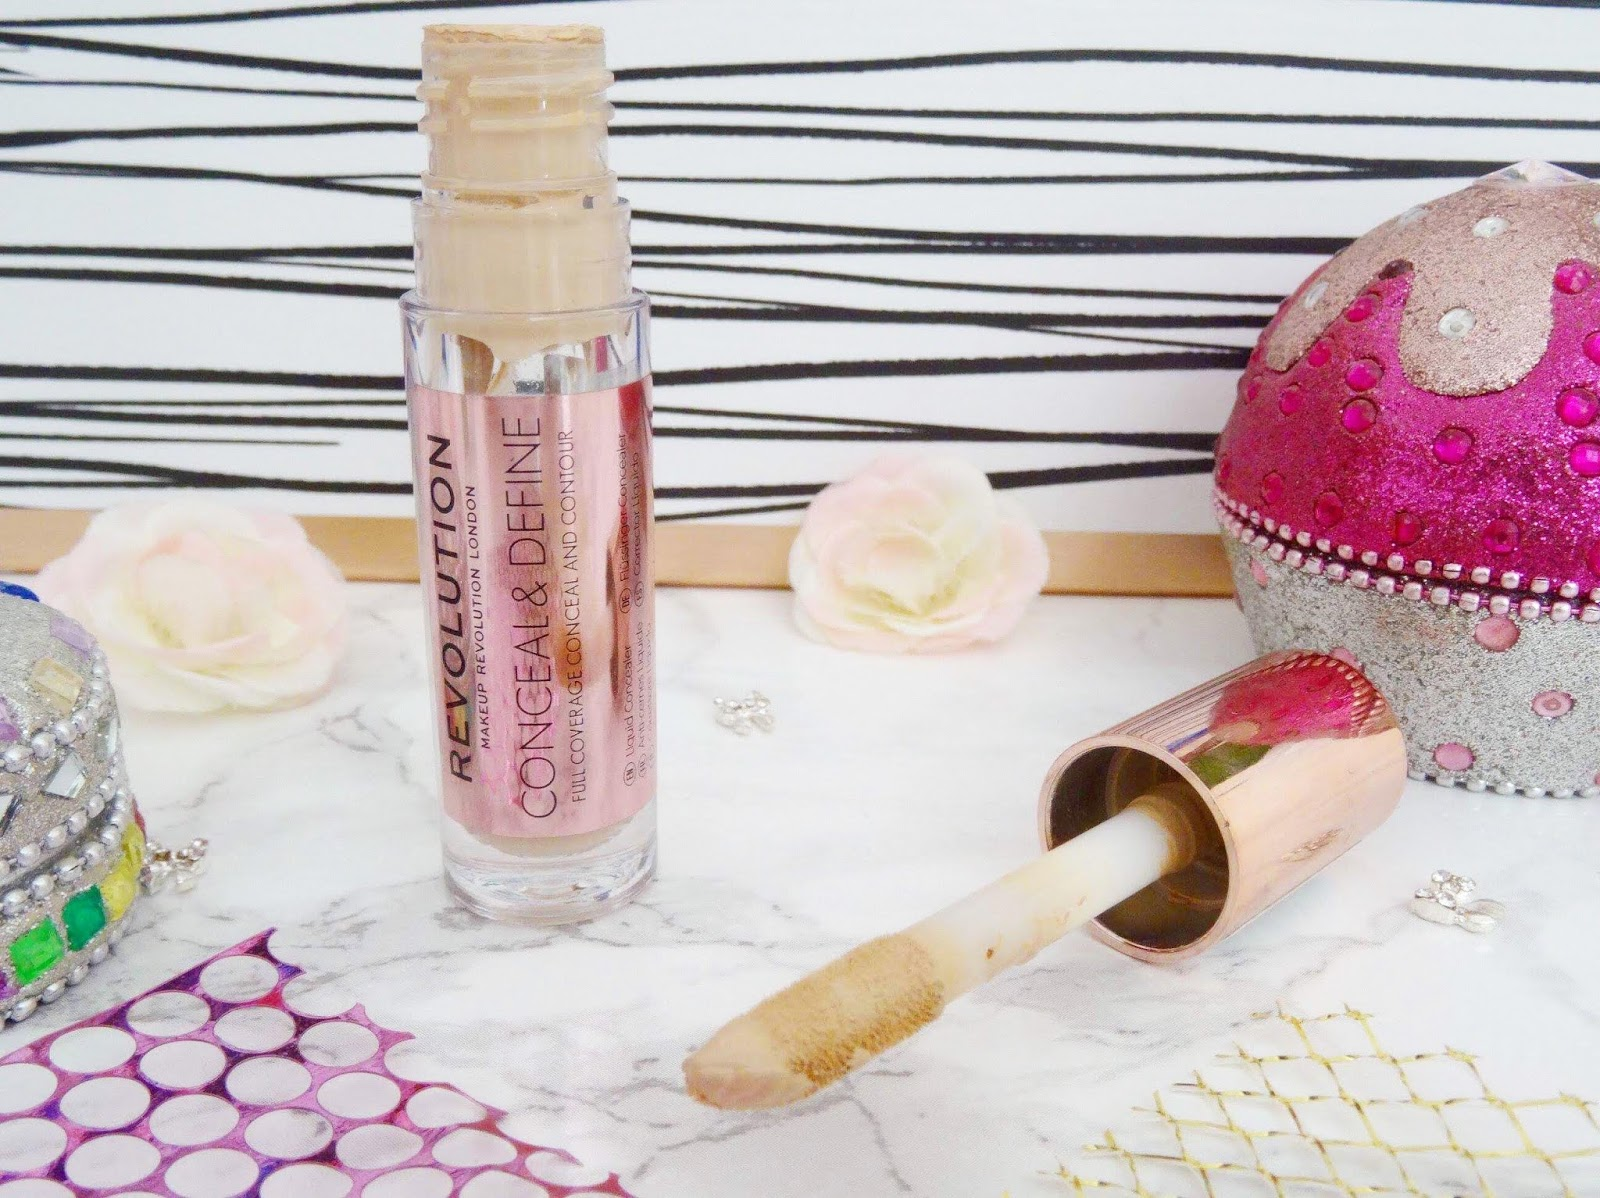 Makeup Revolutions Conceal and Define Concealer Review